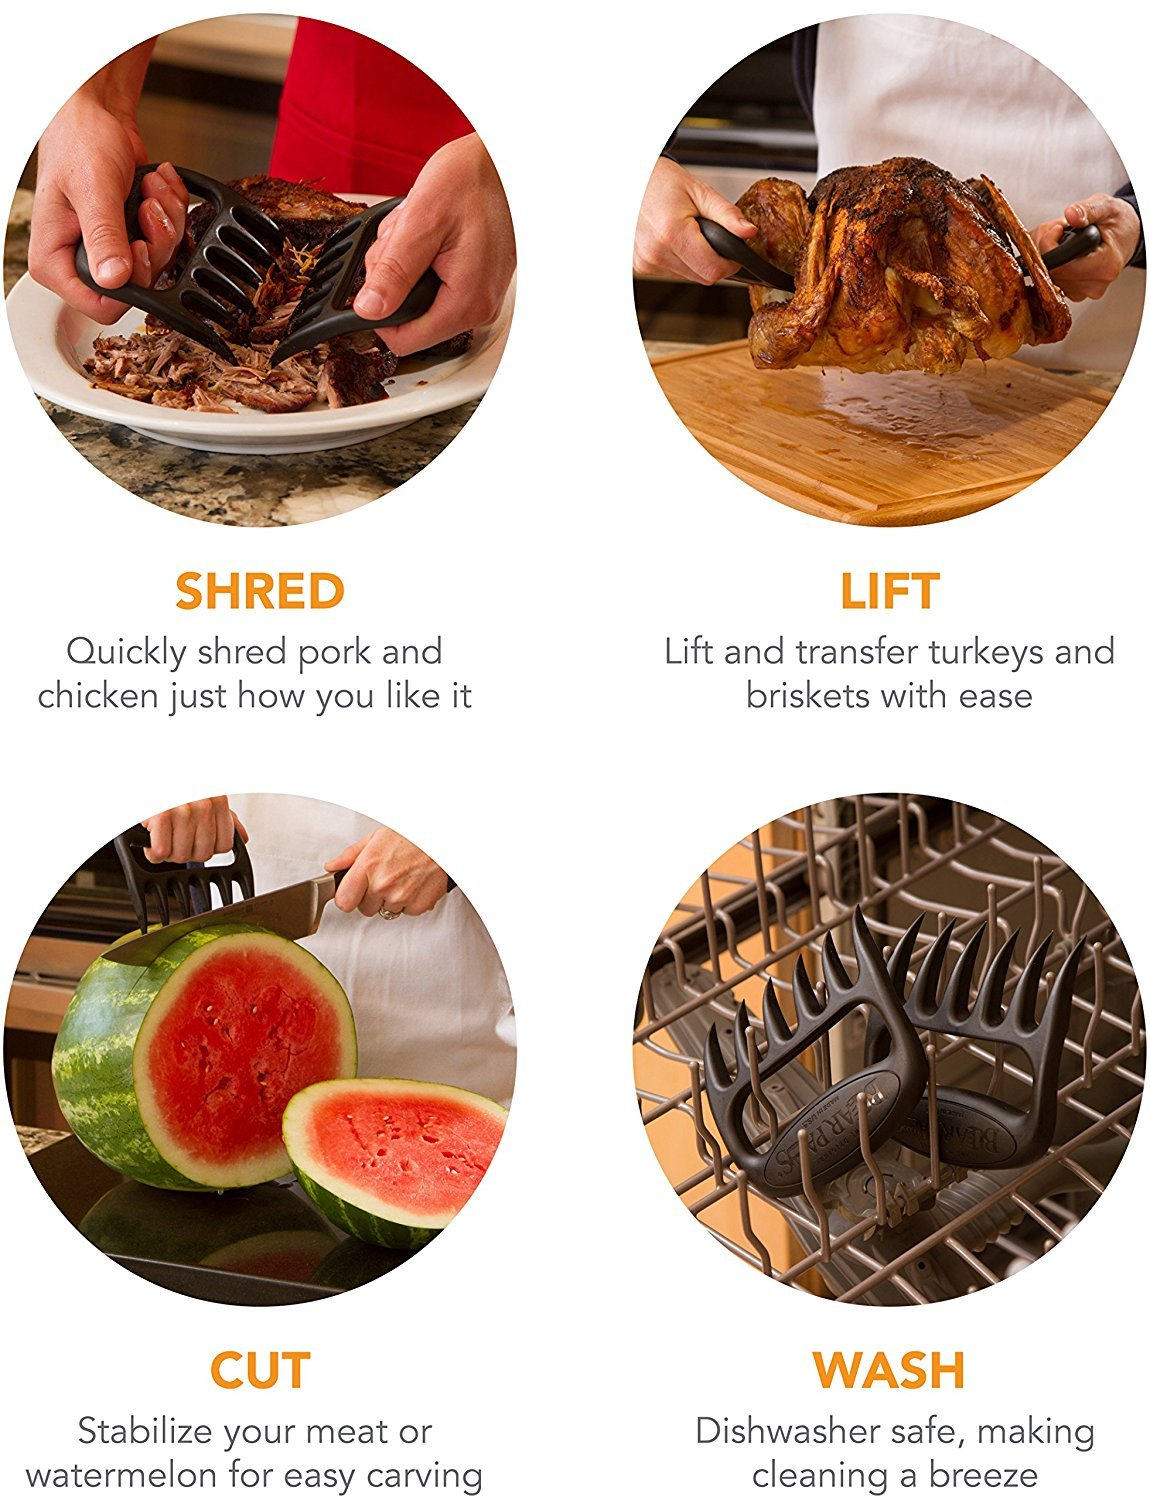 Quality Nylon Coating is Heat Resistant Beef /& Hams Meat Handlers for Pork Kitchen Use Smoker Meat Claws + Timer Poultry Owd Claws Premium Meat Shredder Claws for BBQ